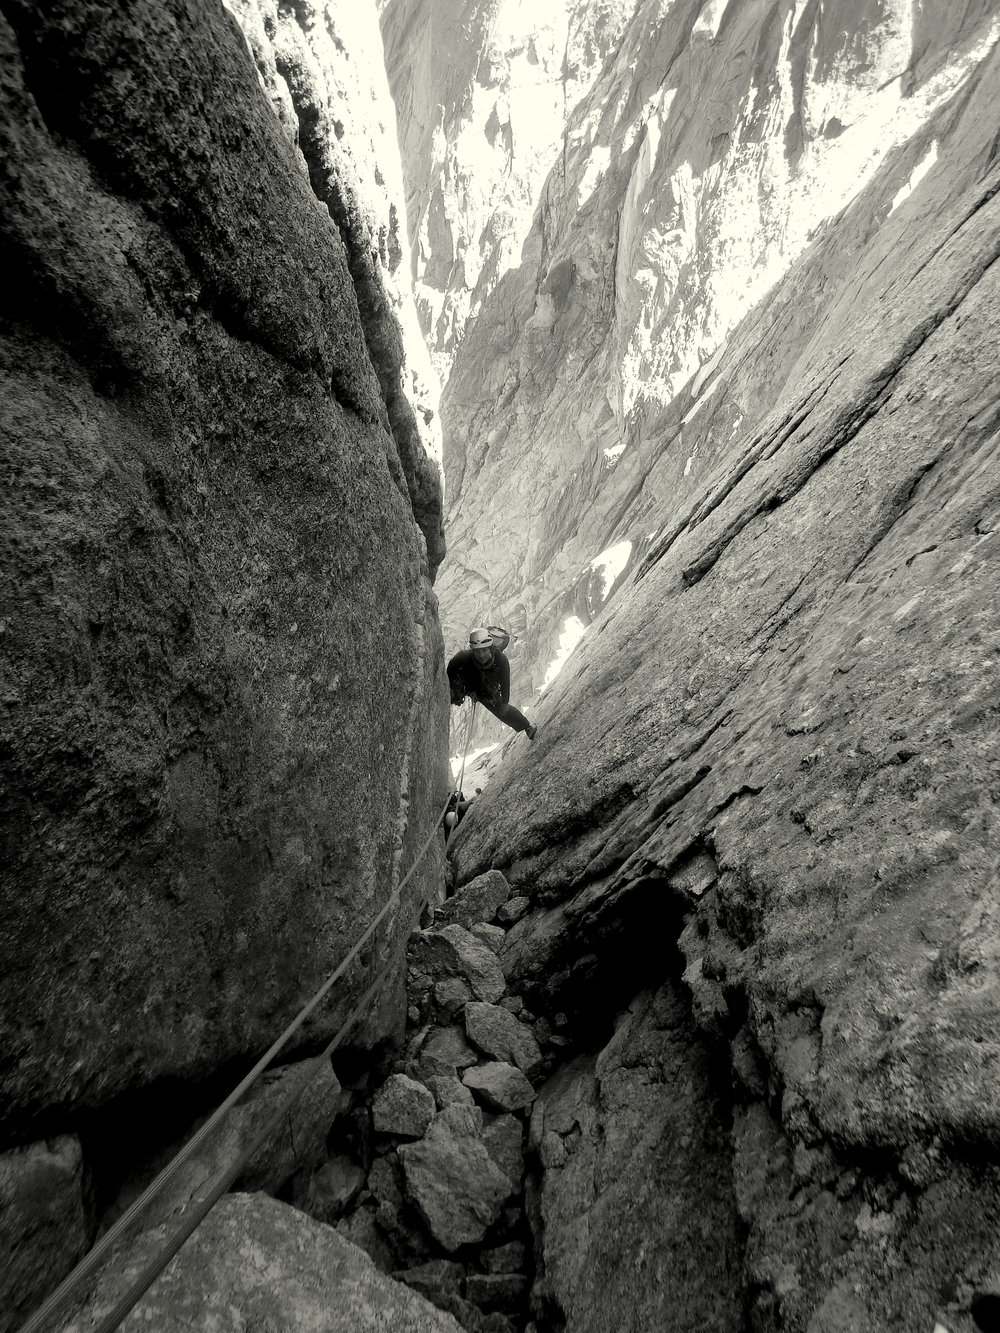 Mandy bridging her way up the exit chimneys, Cassin Route, Piz Badile